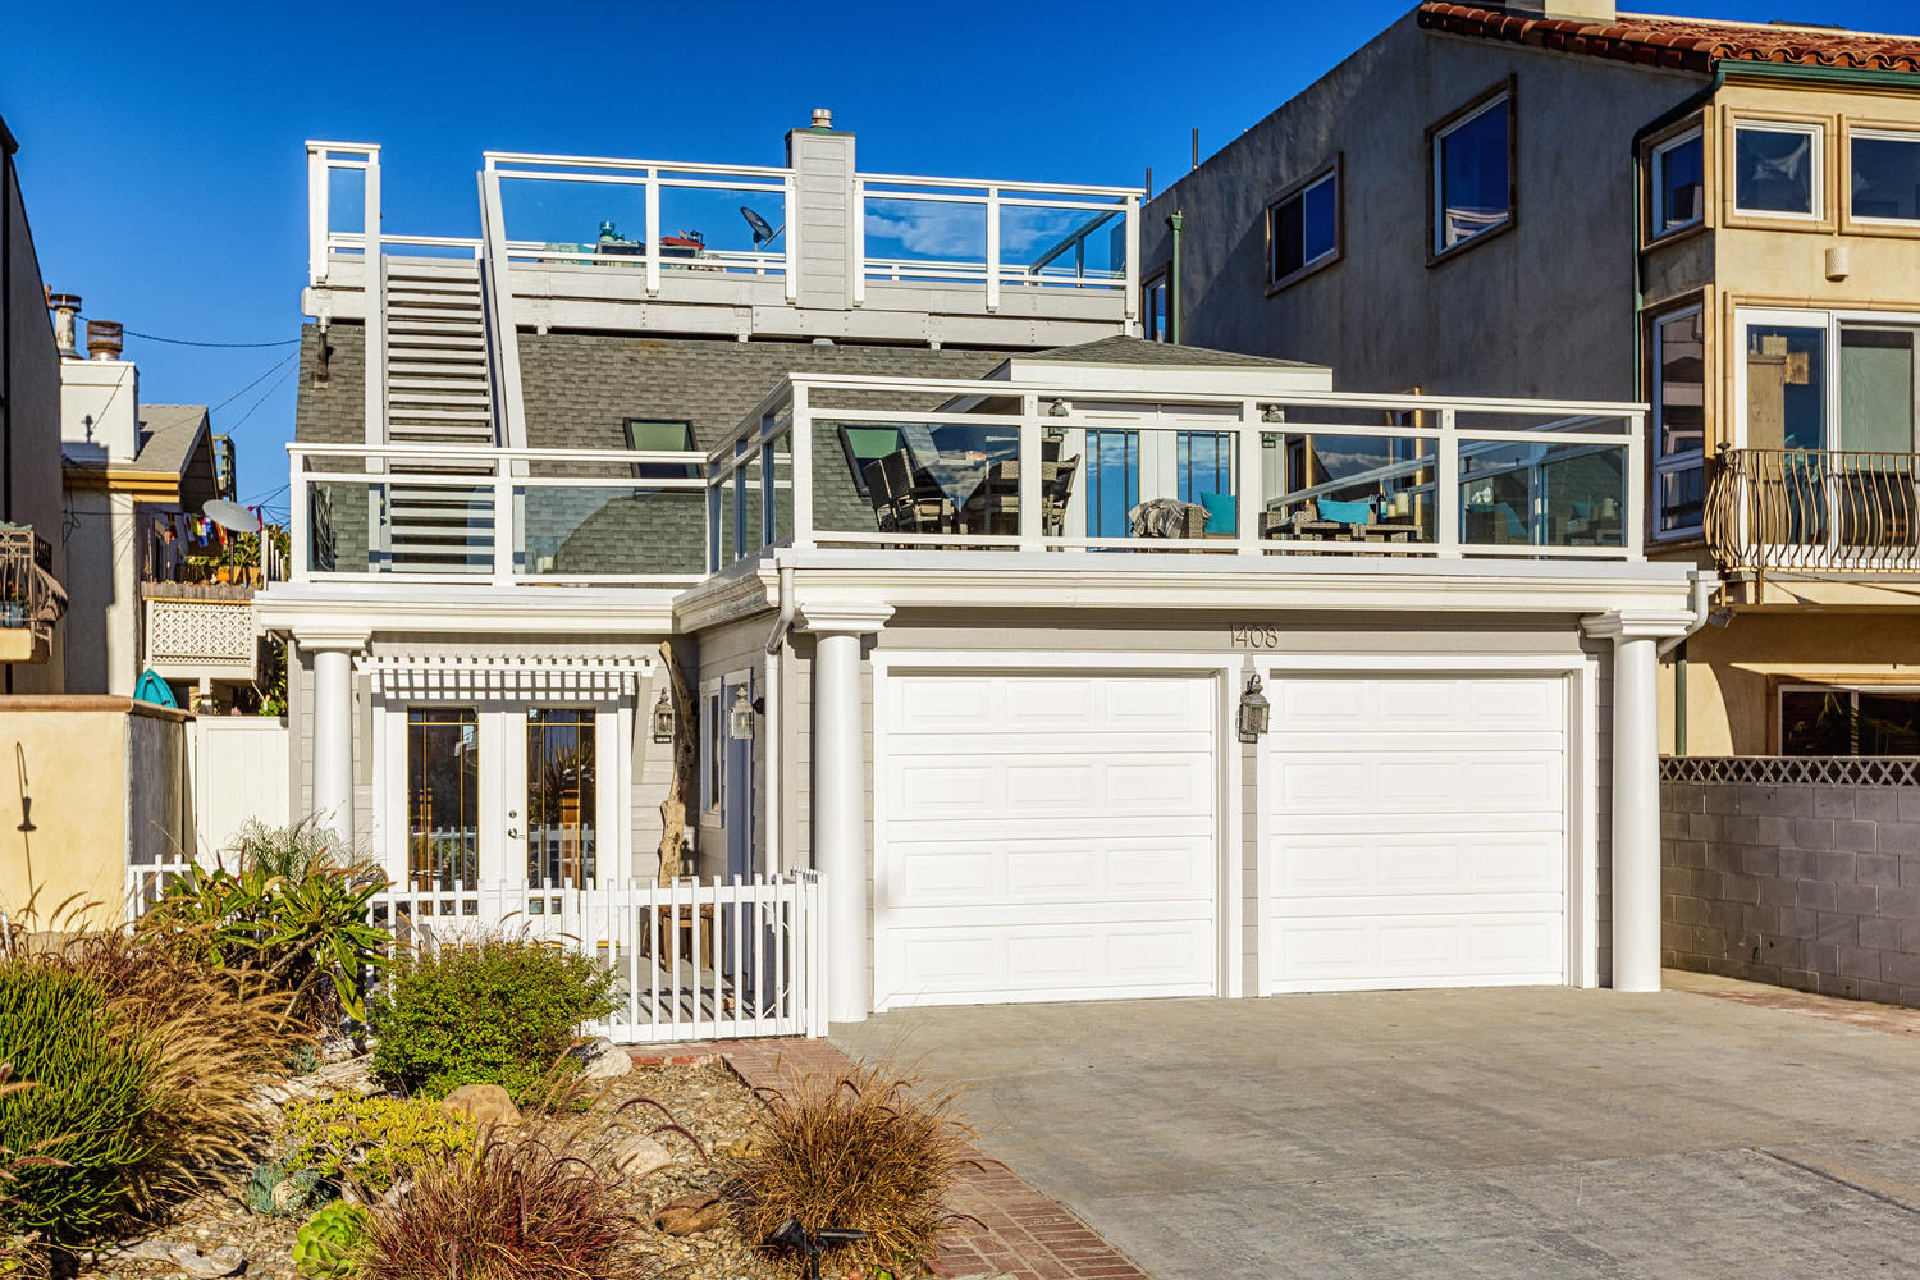 https://www.addressrealestate.com/media/images/blogs/38/2/b_1-1408-ocean-dr-oxnard-ca-93035-mls-size-001-13-front-of-home-1500x1000-72dpi.jpg